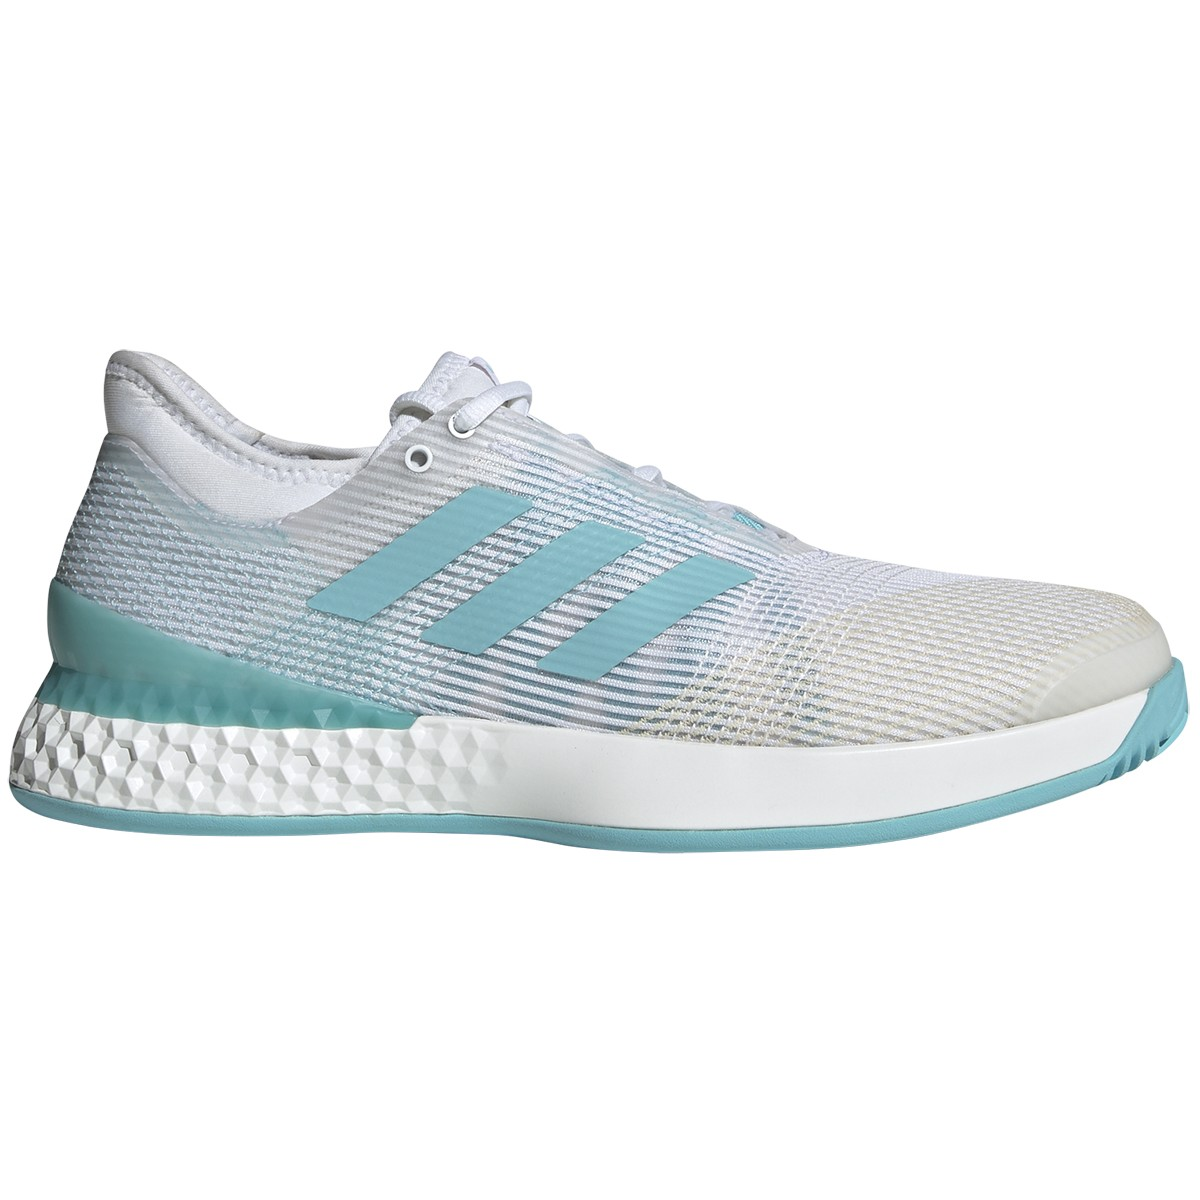 CHAUSSURES ADIDAS ADIZERO UBERSONIC 3 PARLEY TOUTES SURFACES